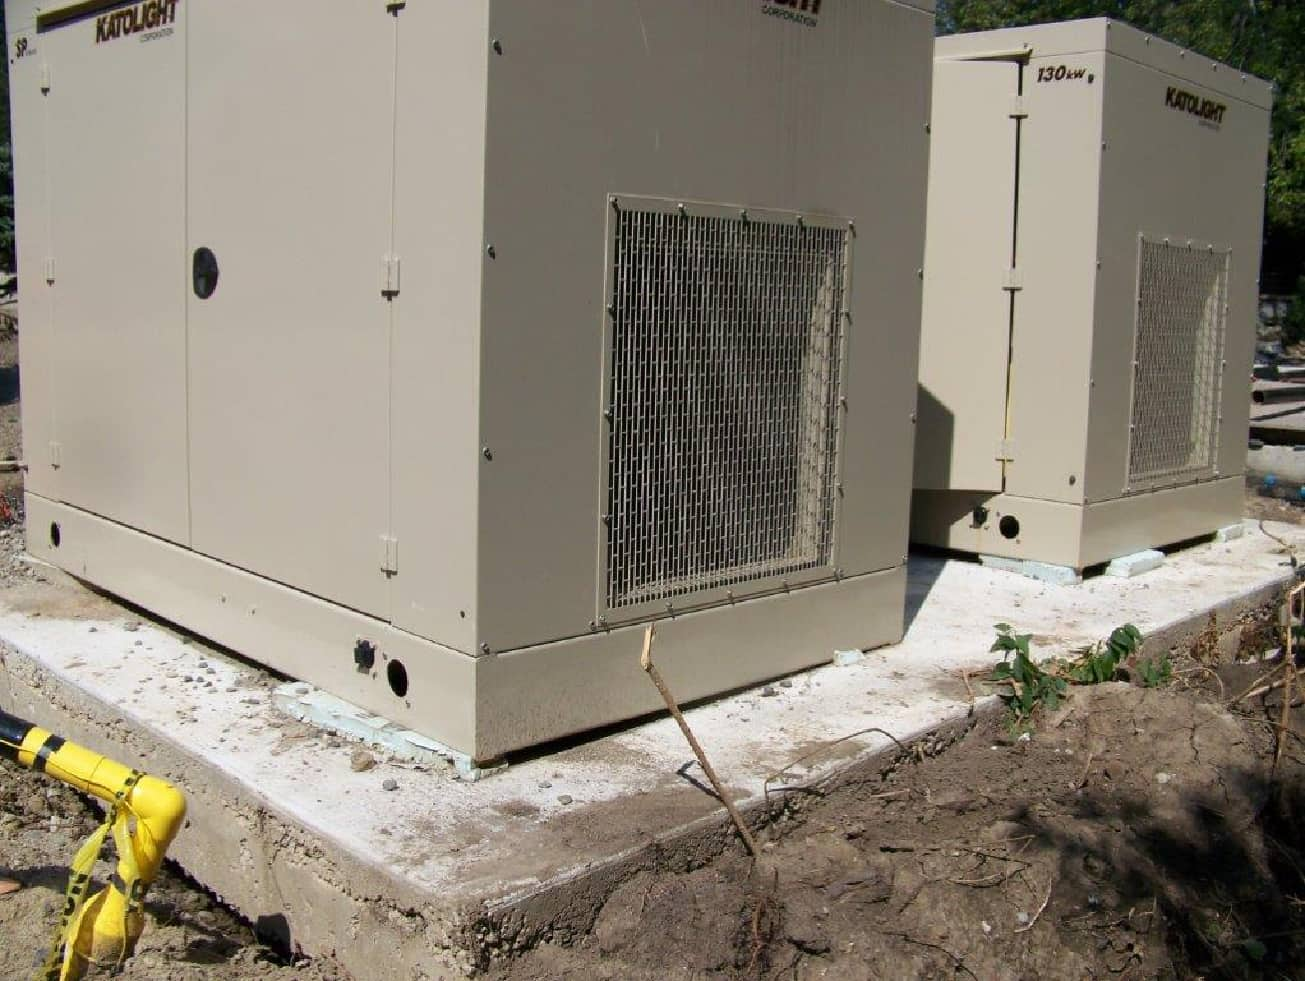 installing 2 new 130kw generators at a home in Toronto-B